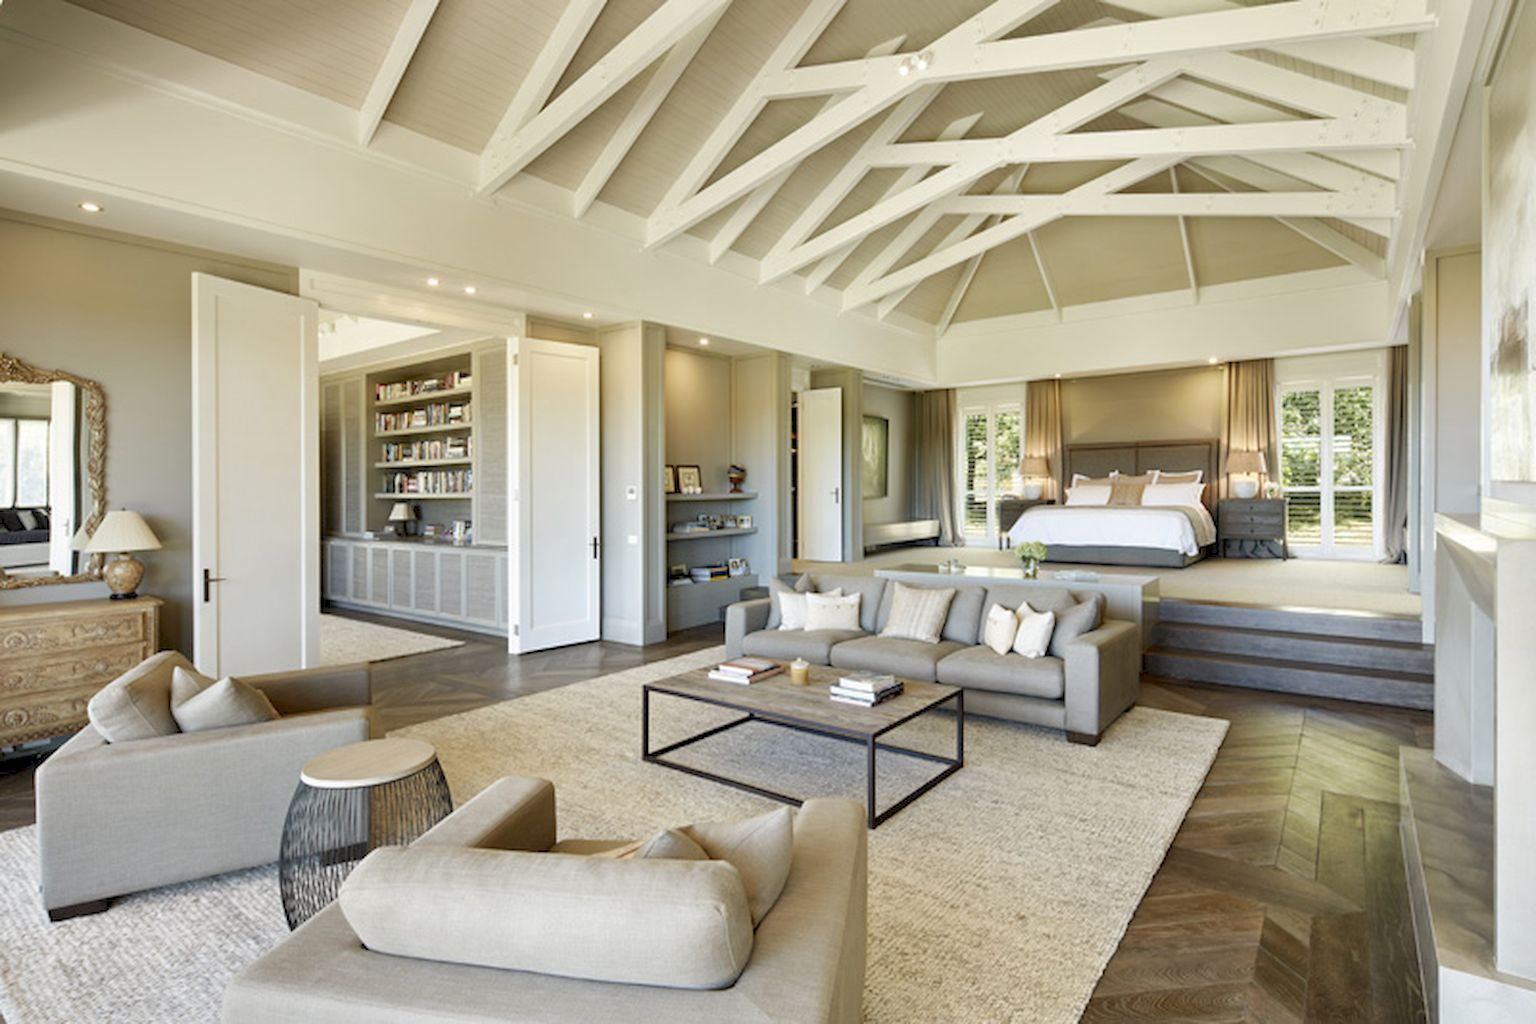 Best Pin By Lexi Noell On Home Dream Master Bedroom Master 400 x 300